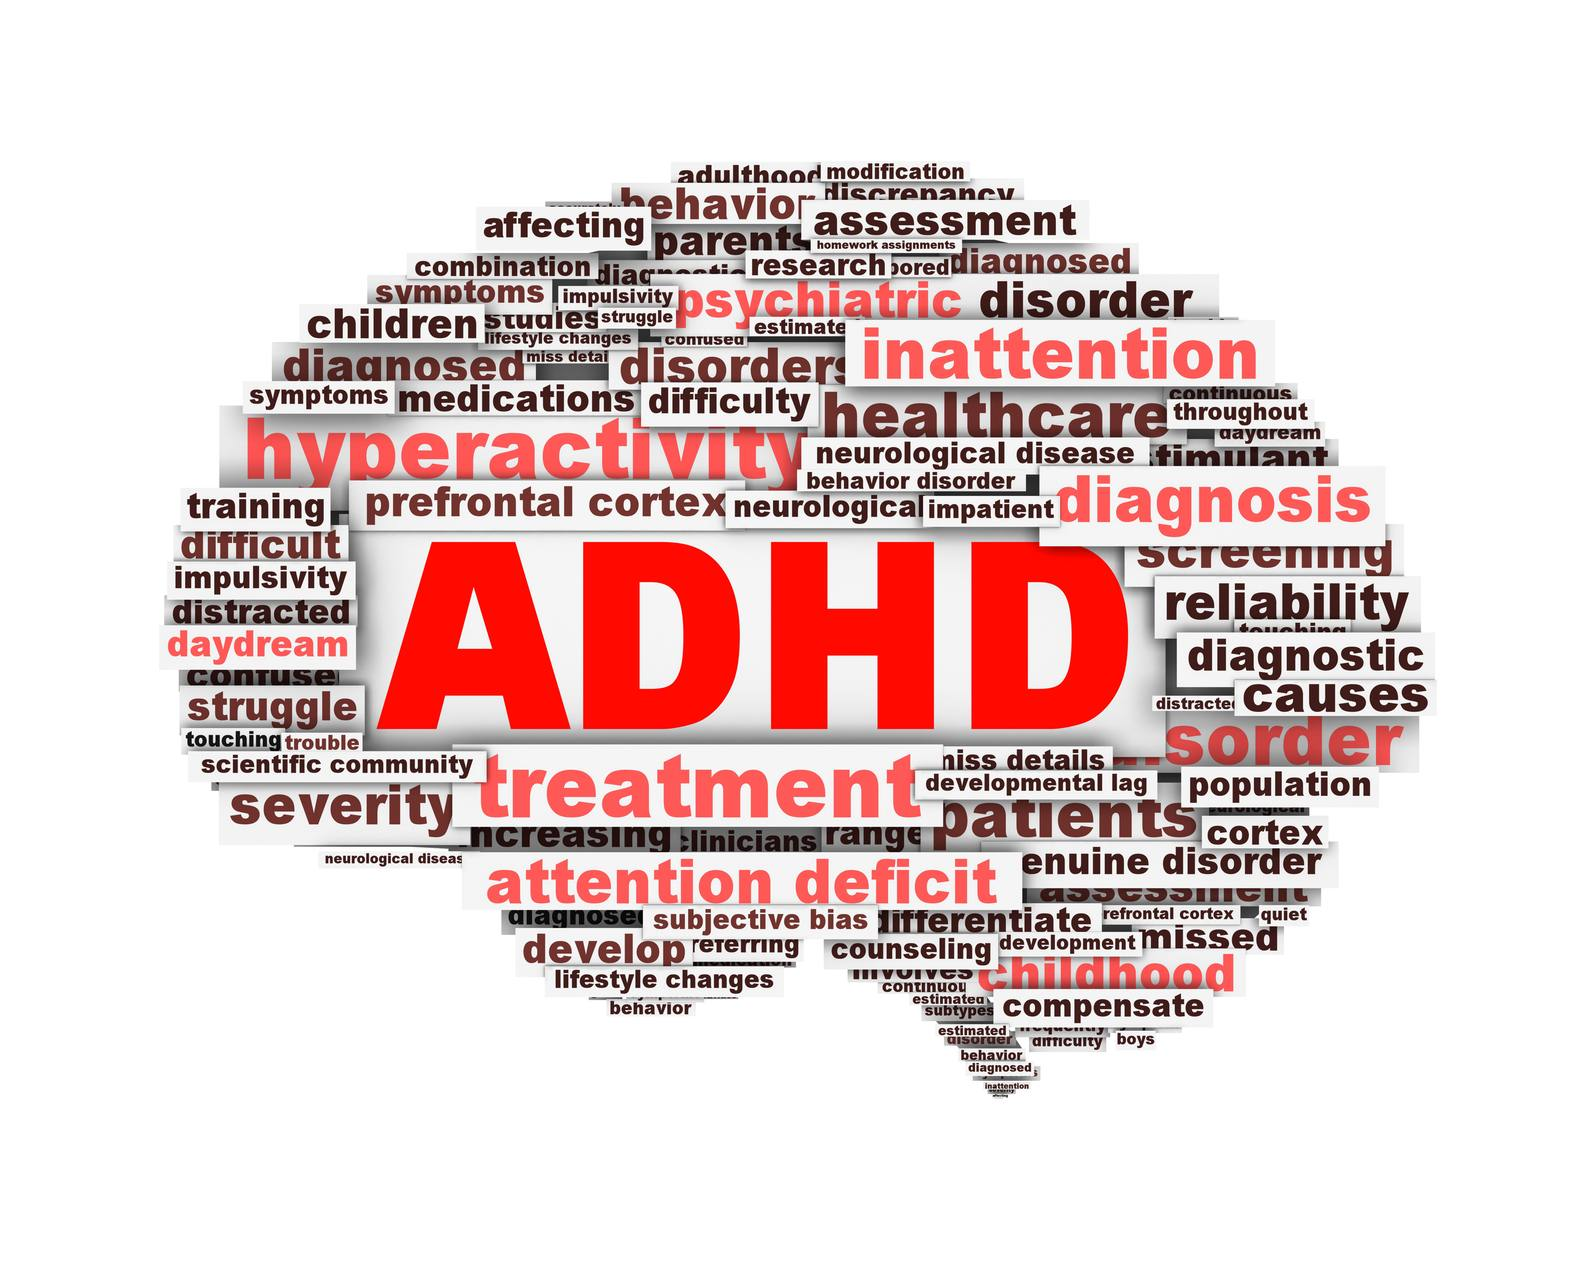 an argument against the use of drugs as a treatment of children with attention deficit hyperactivity An increased prescription of central stimulants (cs) for treatment of attention-deficit hyperactivity disorder (adhd) in children and adolescents has been reported in.